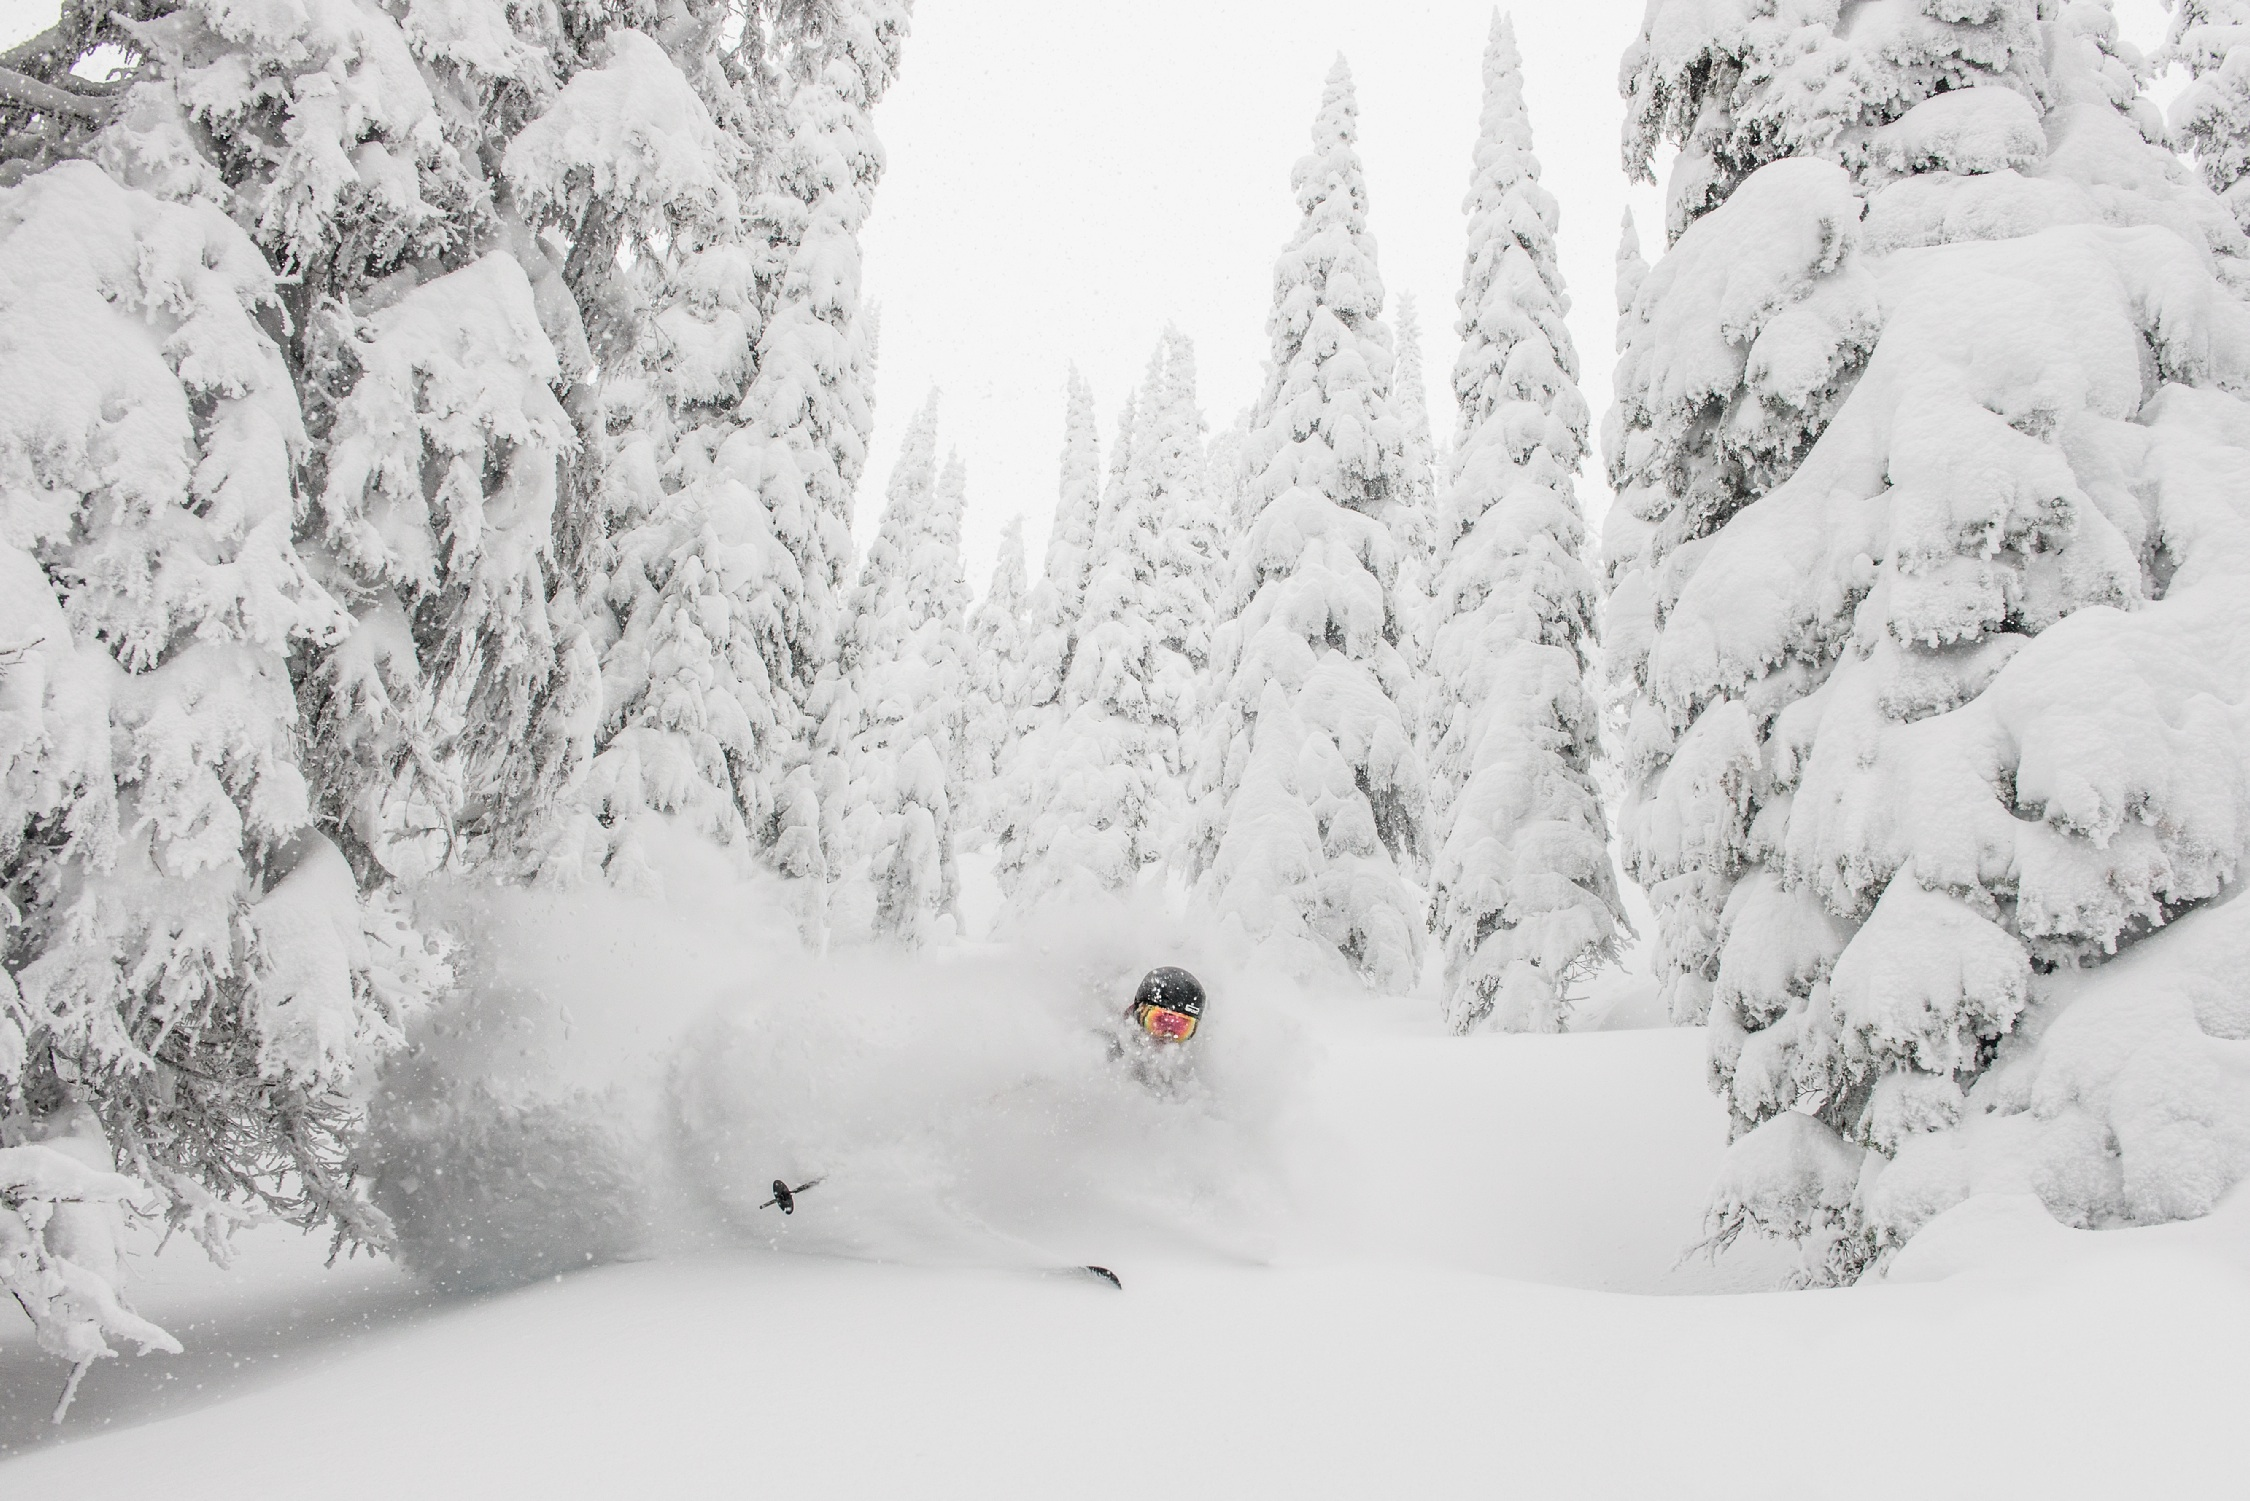 Whitewater Ski Resort. Photo: Kari Medig